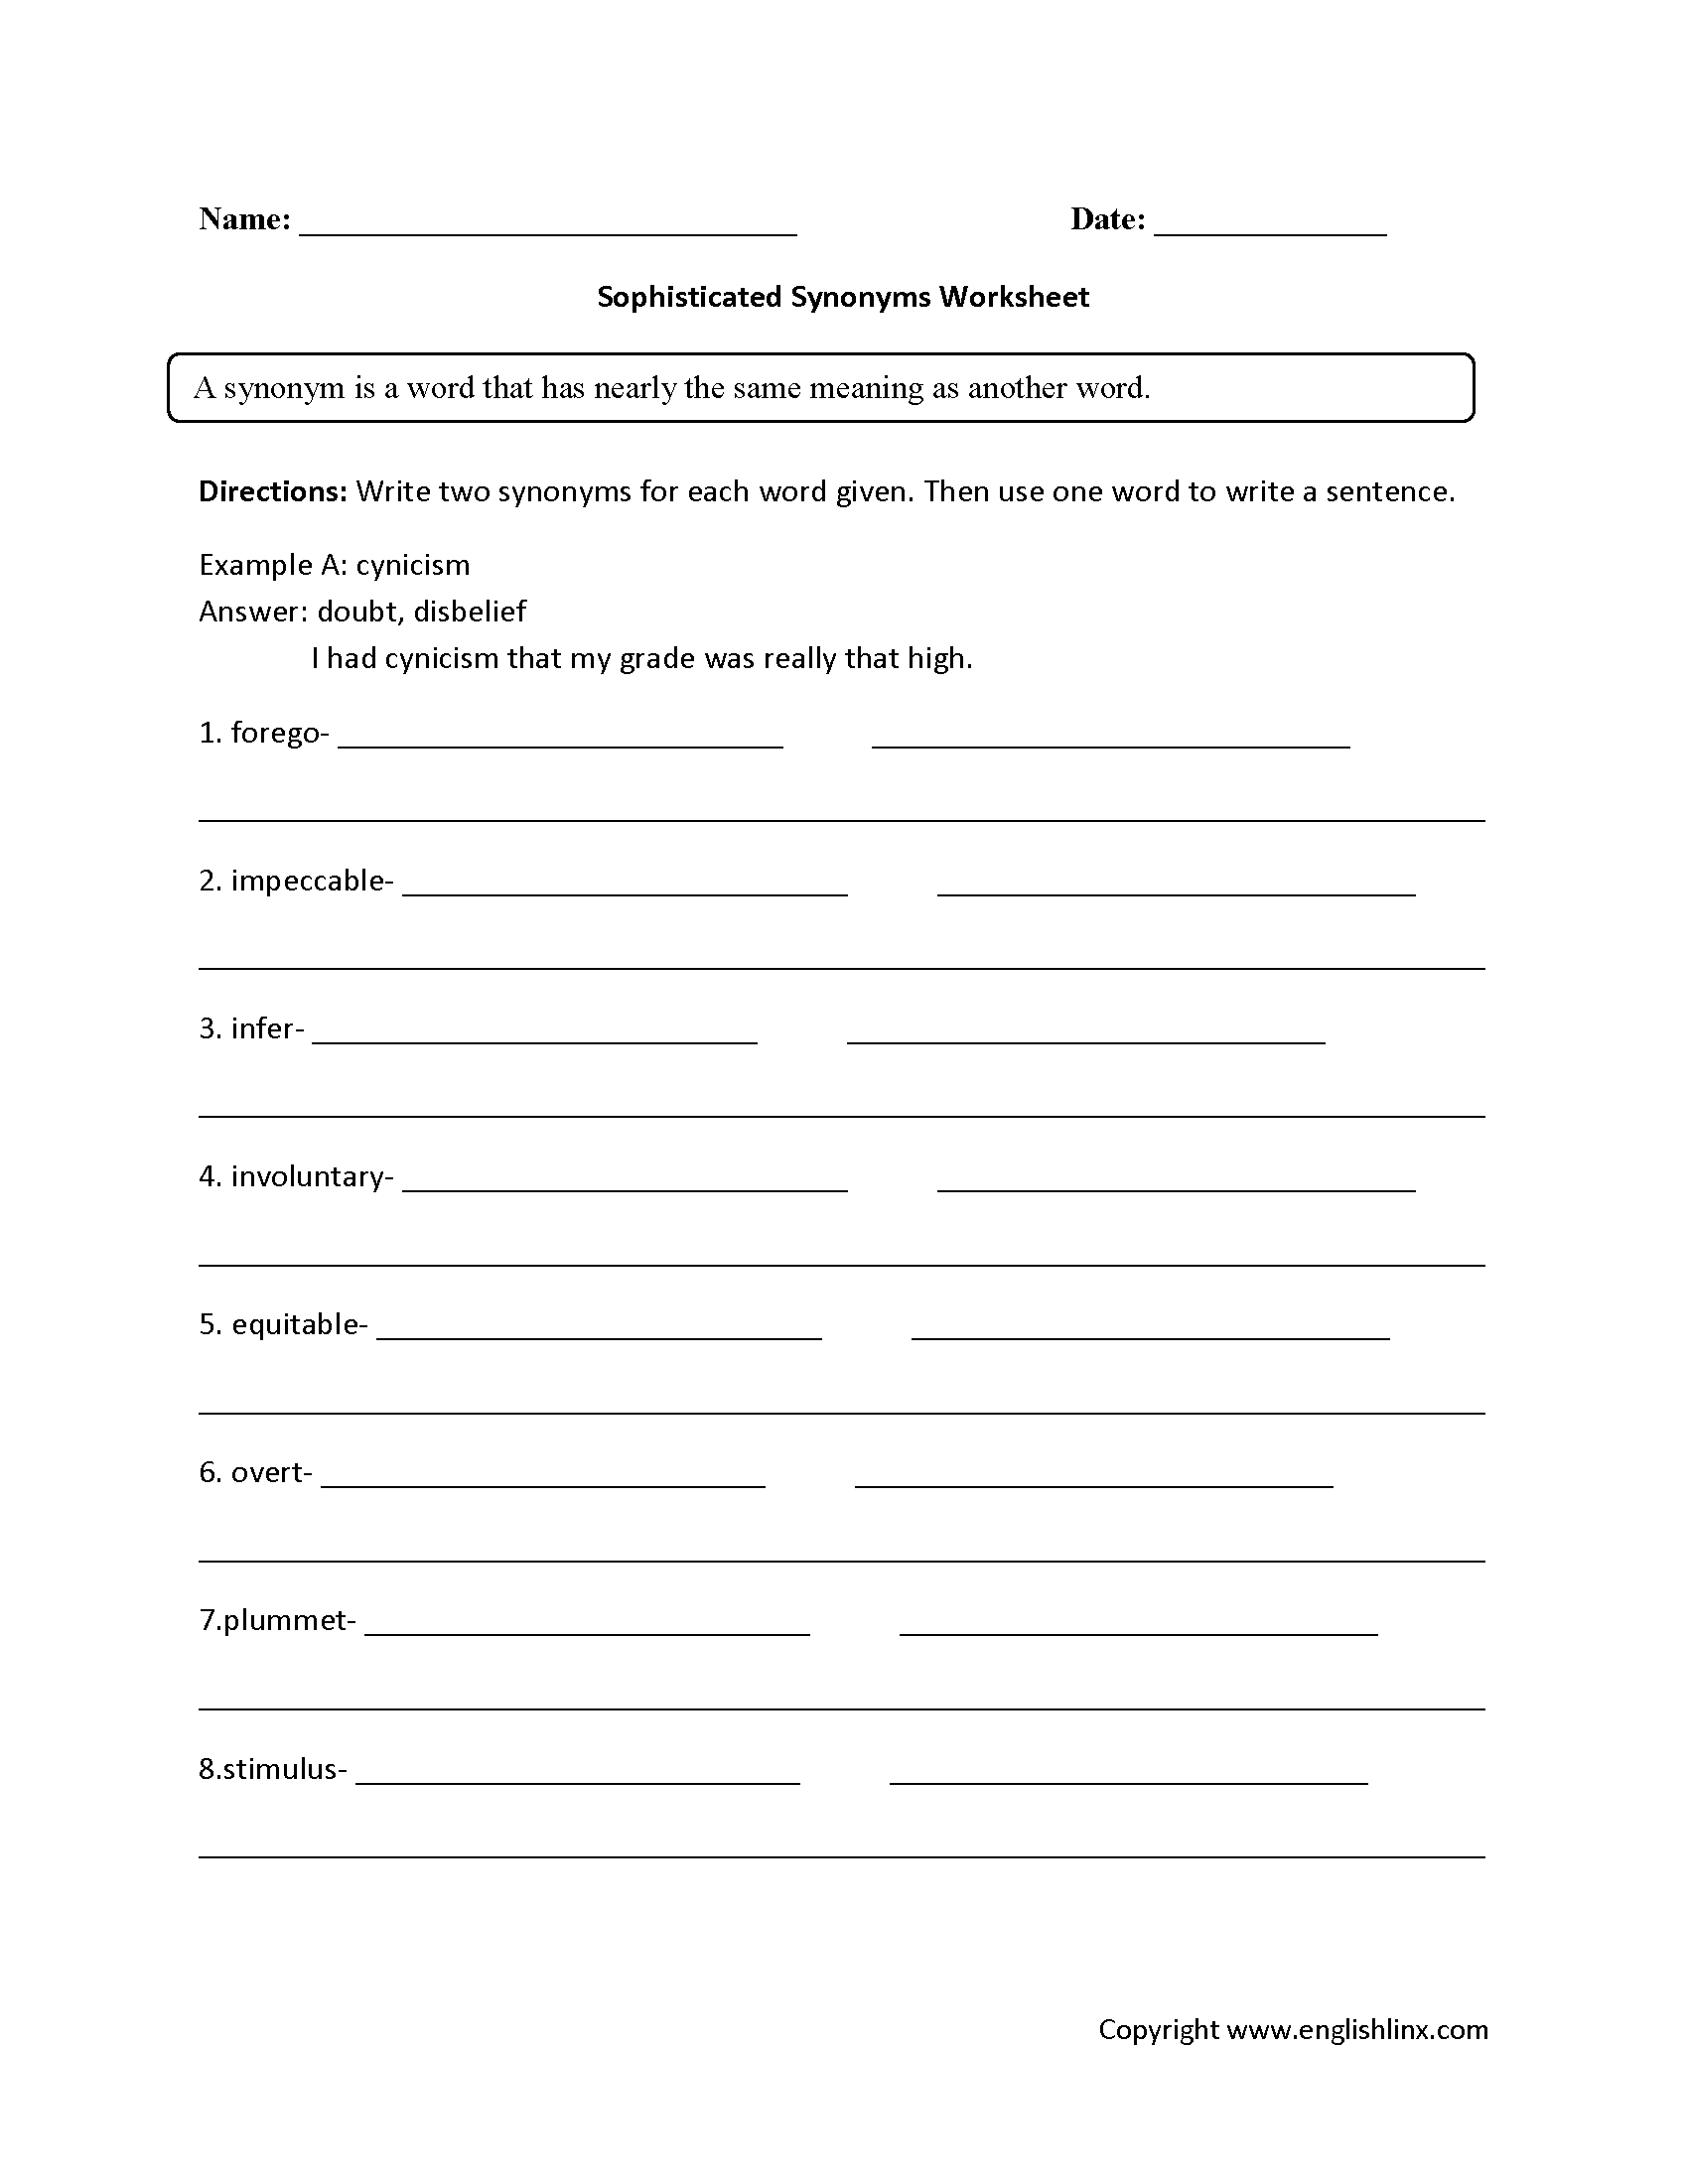 small resolution of Sophisticated Synonyms Worksheets   Synonym worksheet